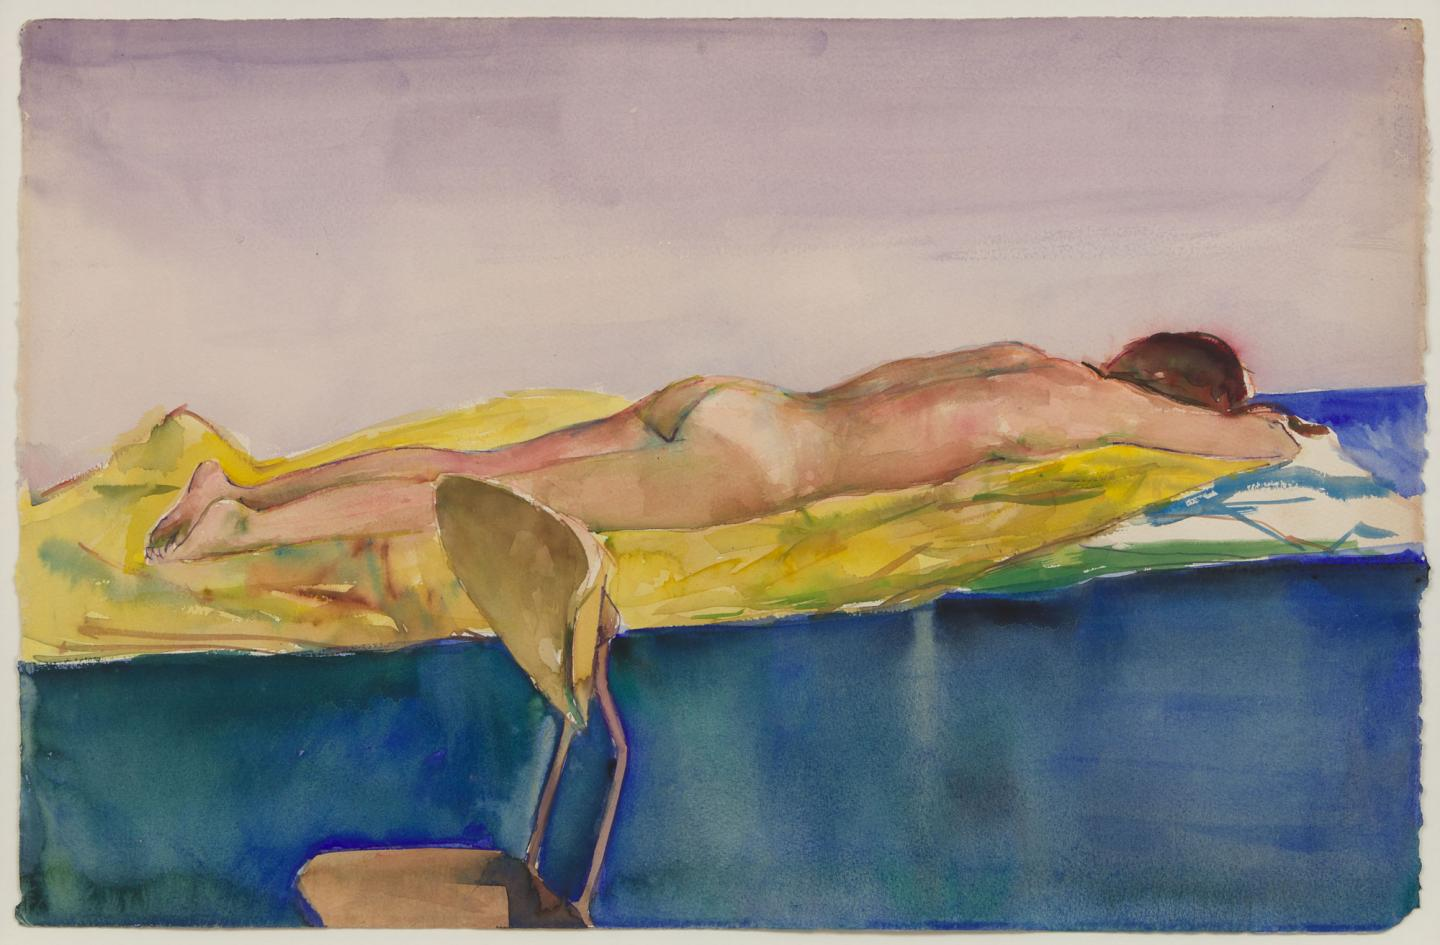 Patrick Angus Untitled, 1980s Watercolor on paper Artwork: 14 1/2 x 22 1/2 in (36.8 x 57 cm)